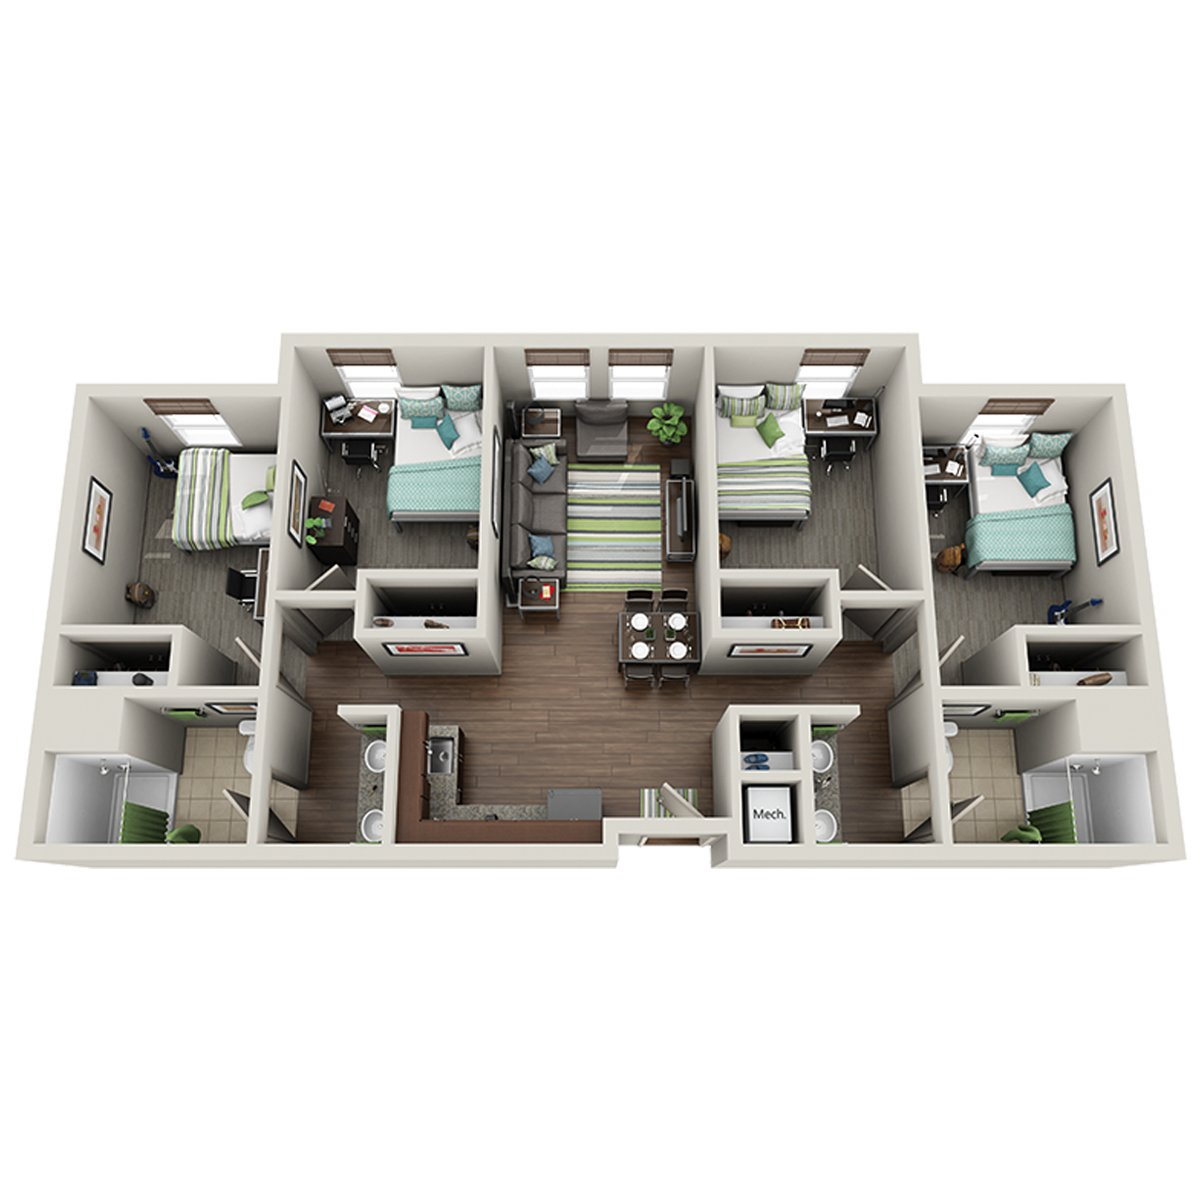 uk housing reslife on twitter the 4 bedroom suite is located in limestone park ii and champions court ii httpstcoducudlr4df - Limestone Apartment 2016